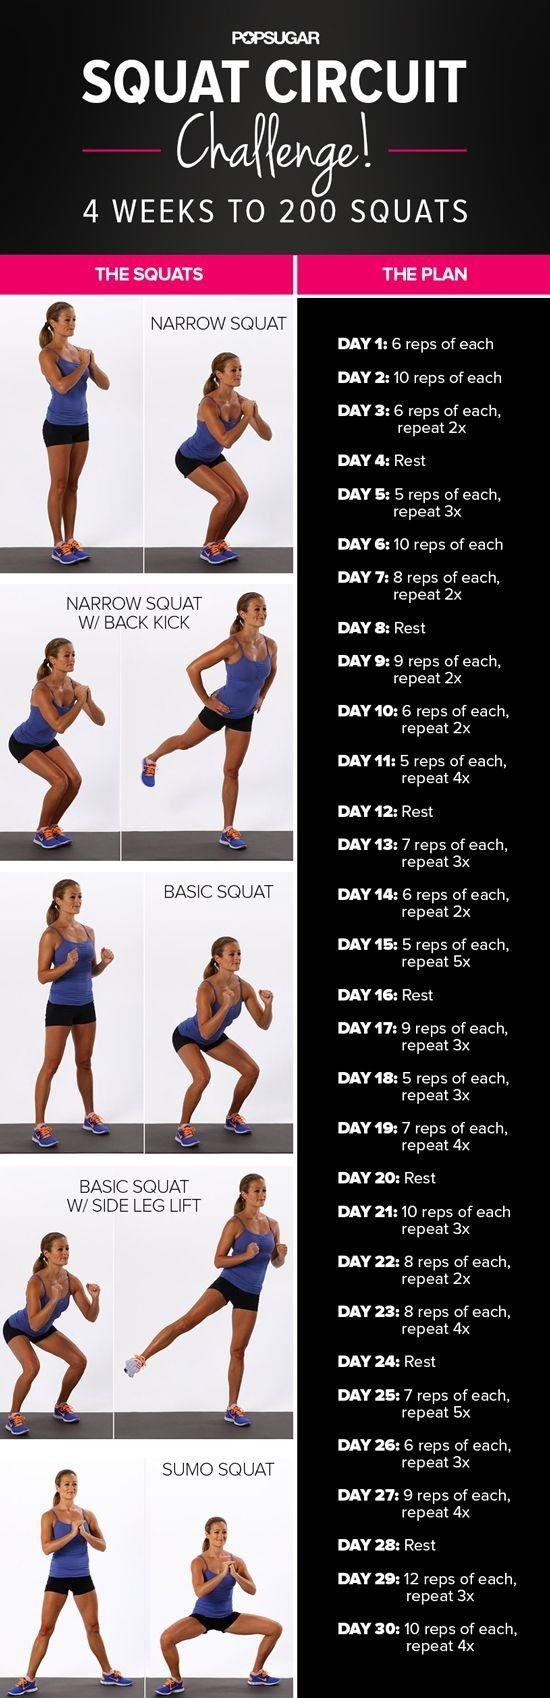 The 12 Best Butt Exercises To Firm Up And Round Your Backside 6 Moves to Resize Your Butt and Thighs 10 Minute Ab Workout: How to Get a Six Pack for YouTube